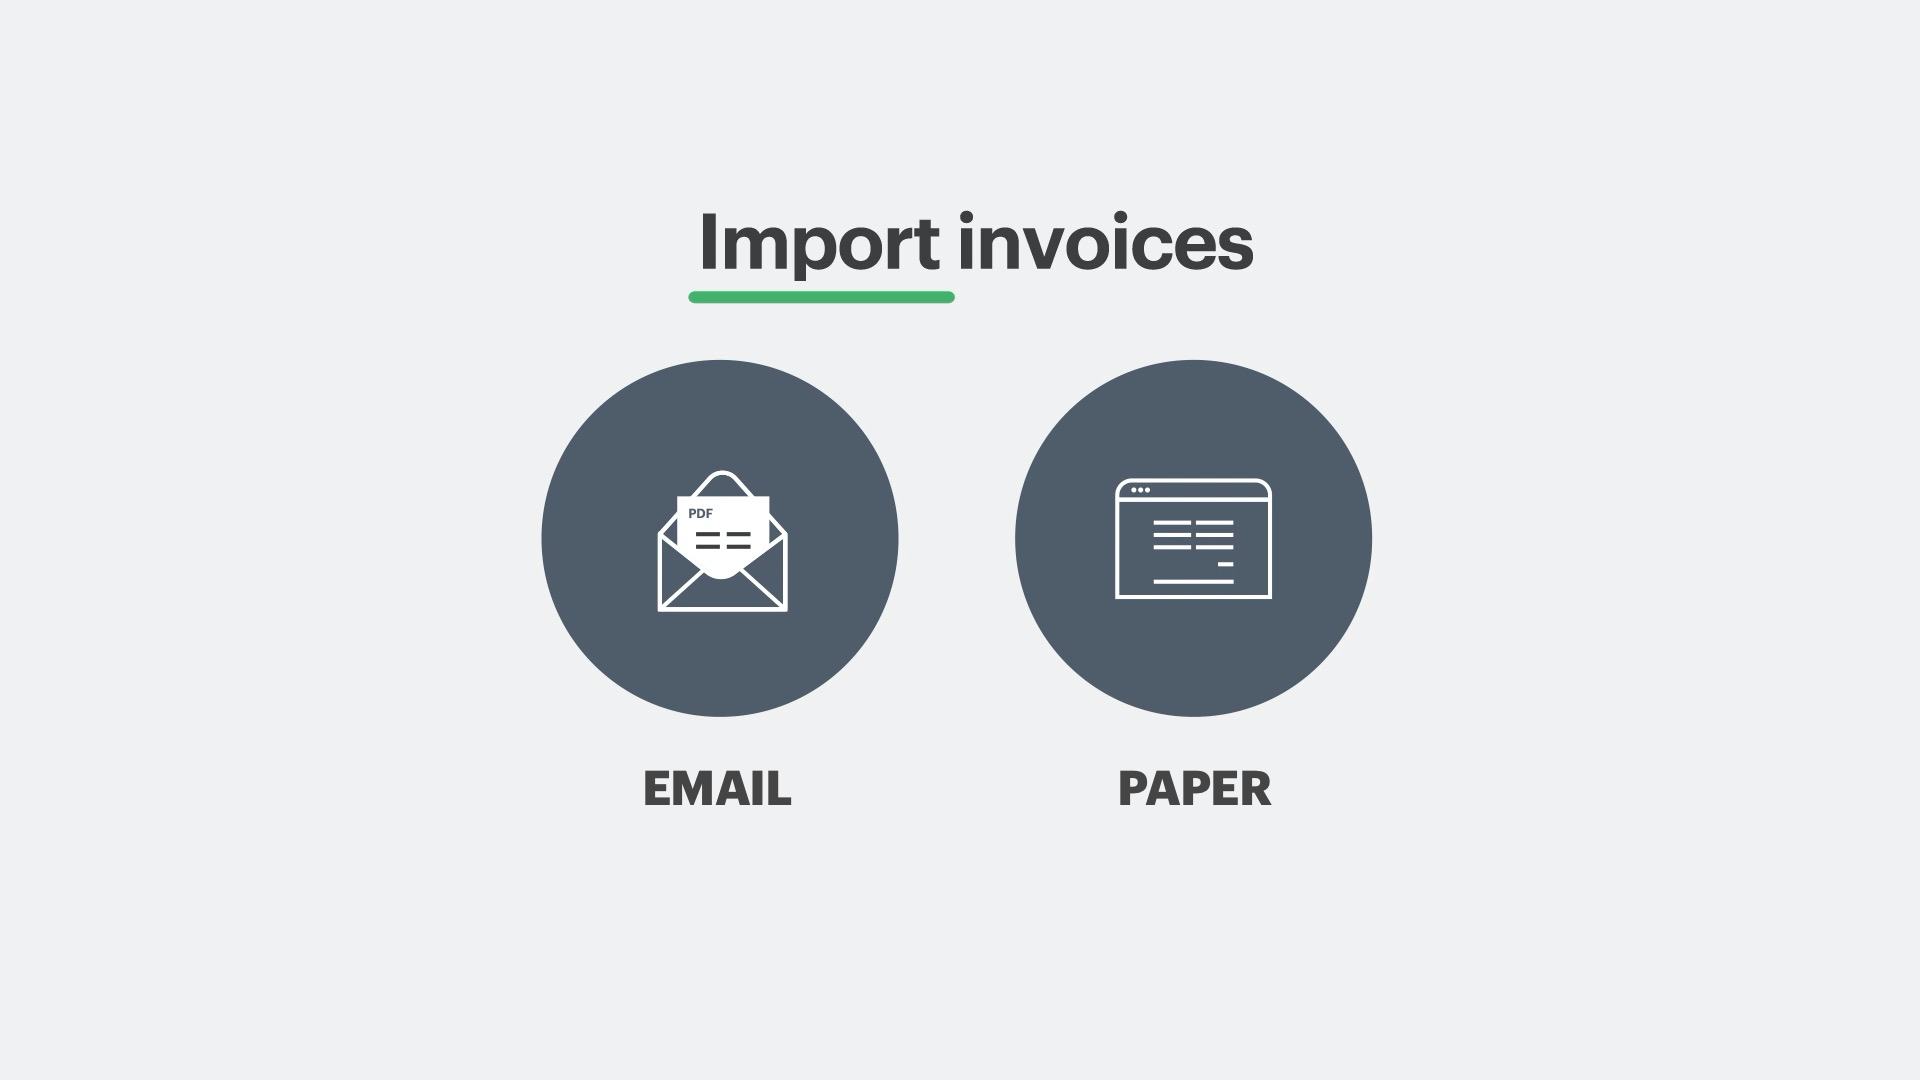 Captures invoice data from both paper and email